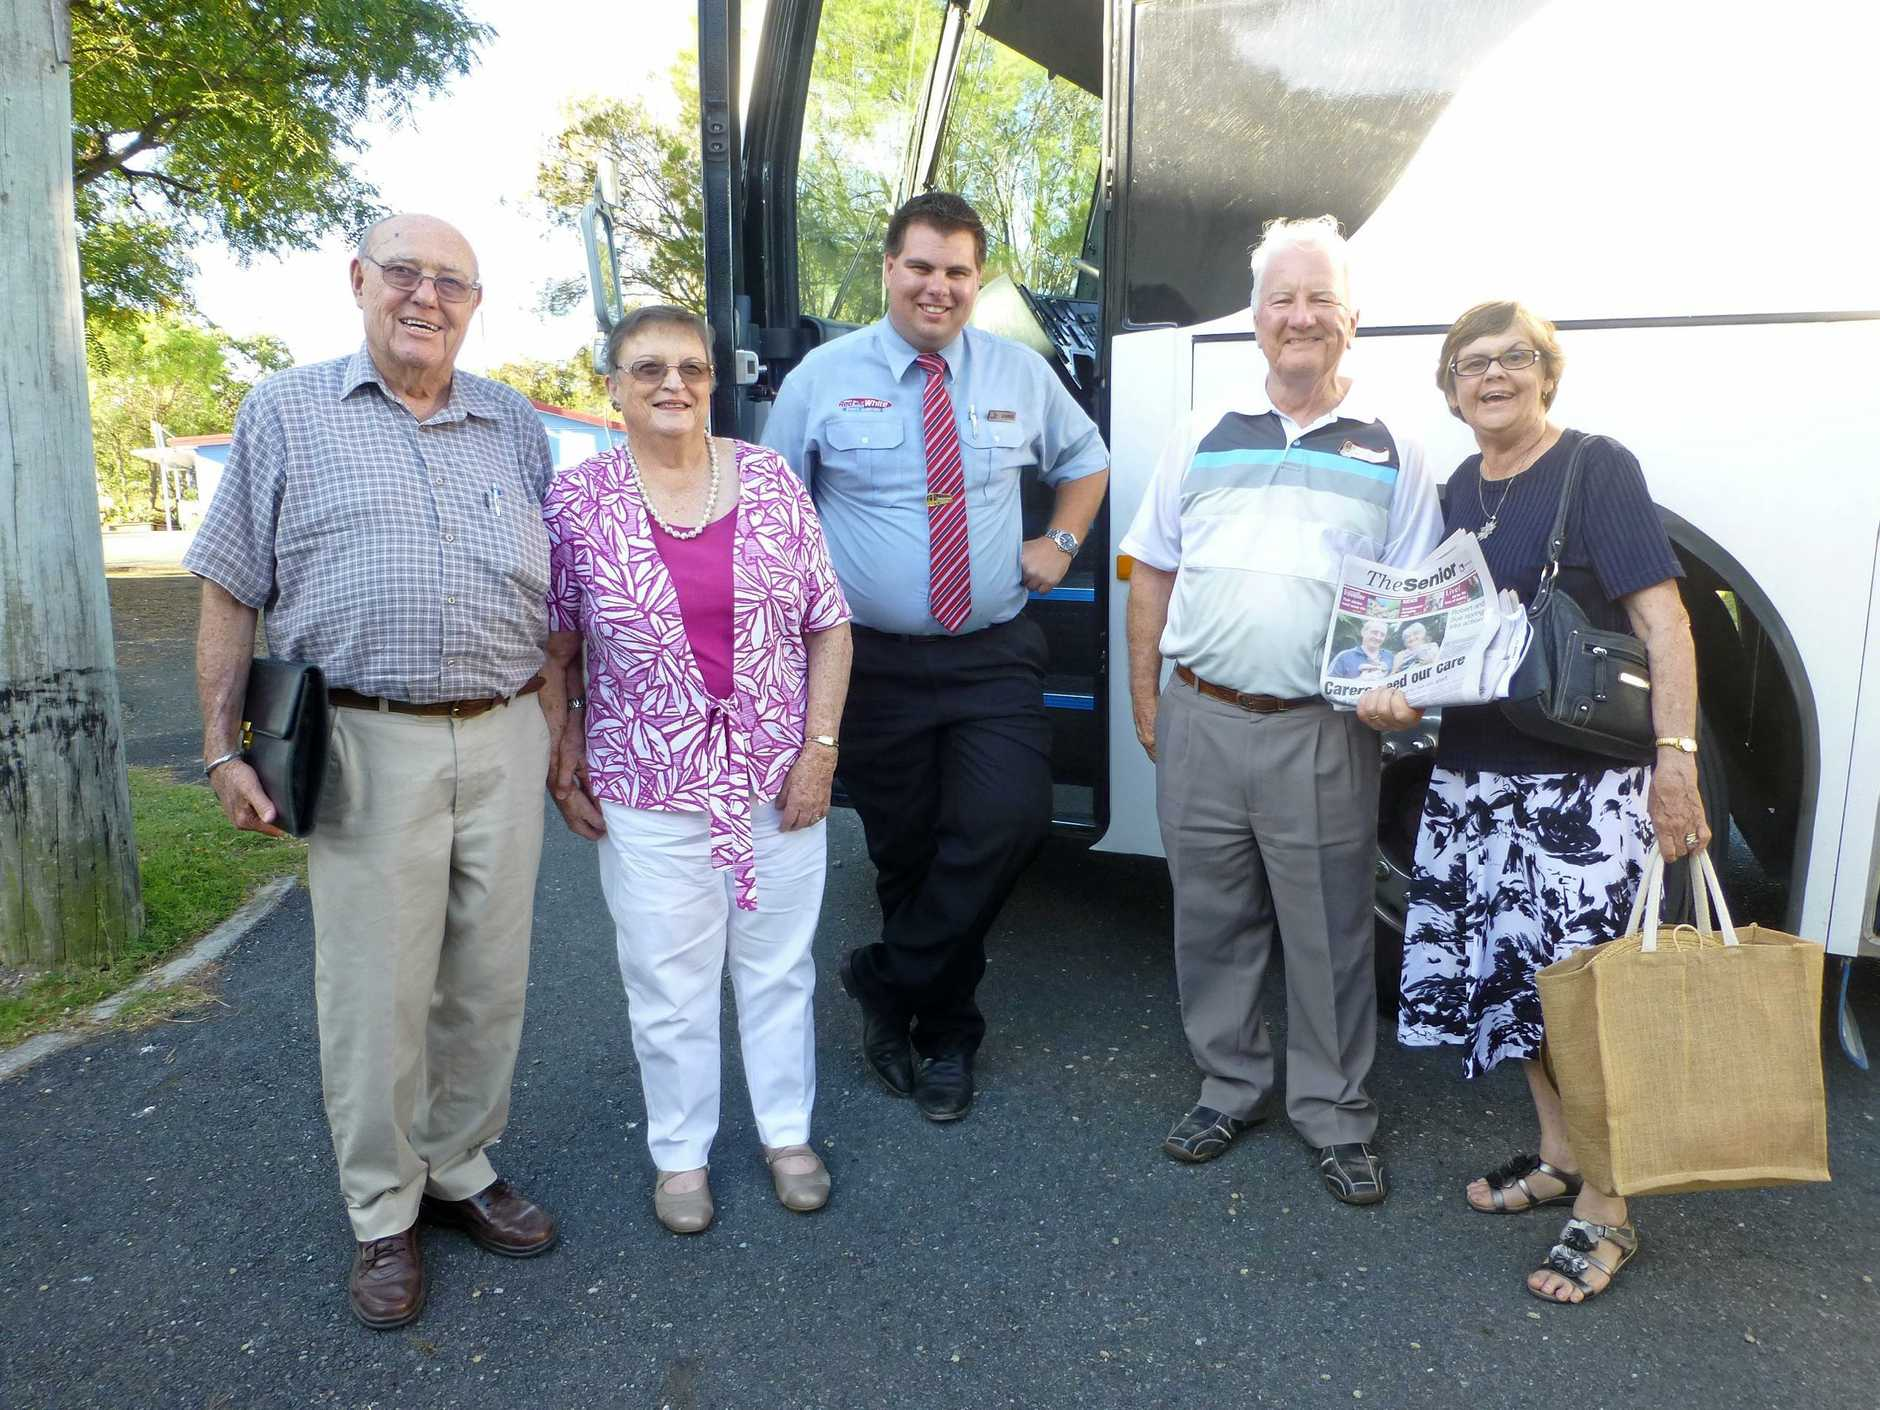 GREAT DAY OUT: Members from the North Brisbane branch of AIR recently enjoyed an outing. Pictured are Nev , Bev, driver Chris, Col and Ann.